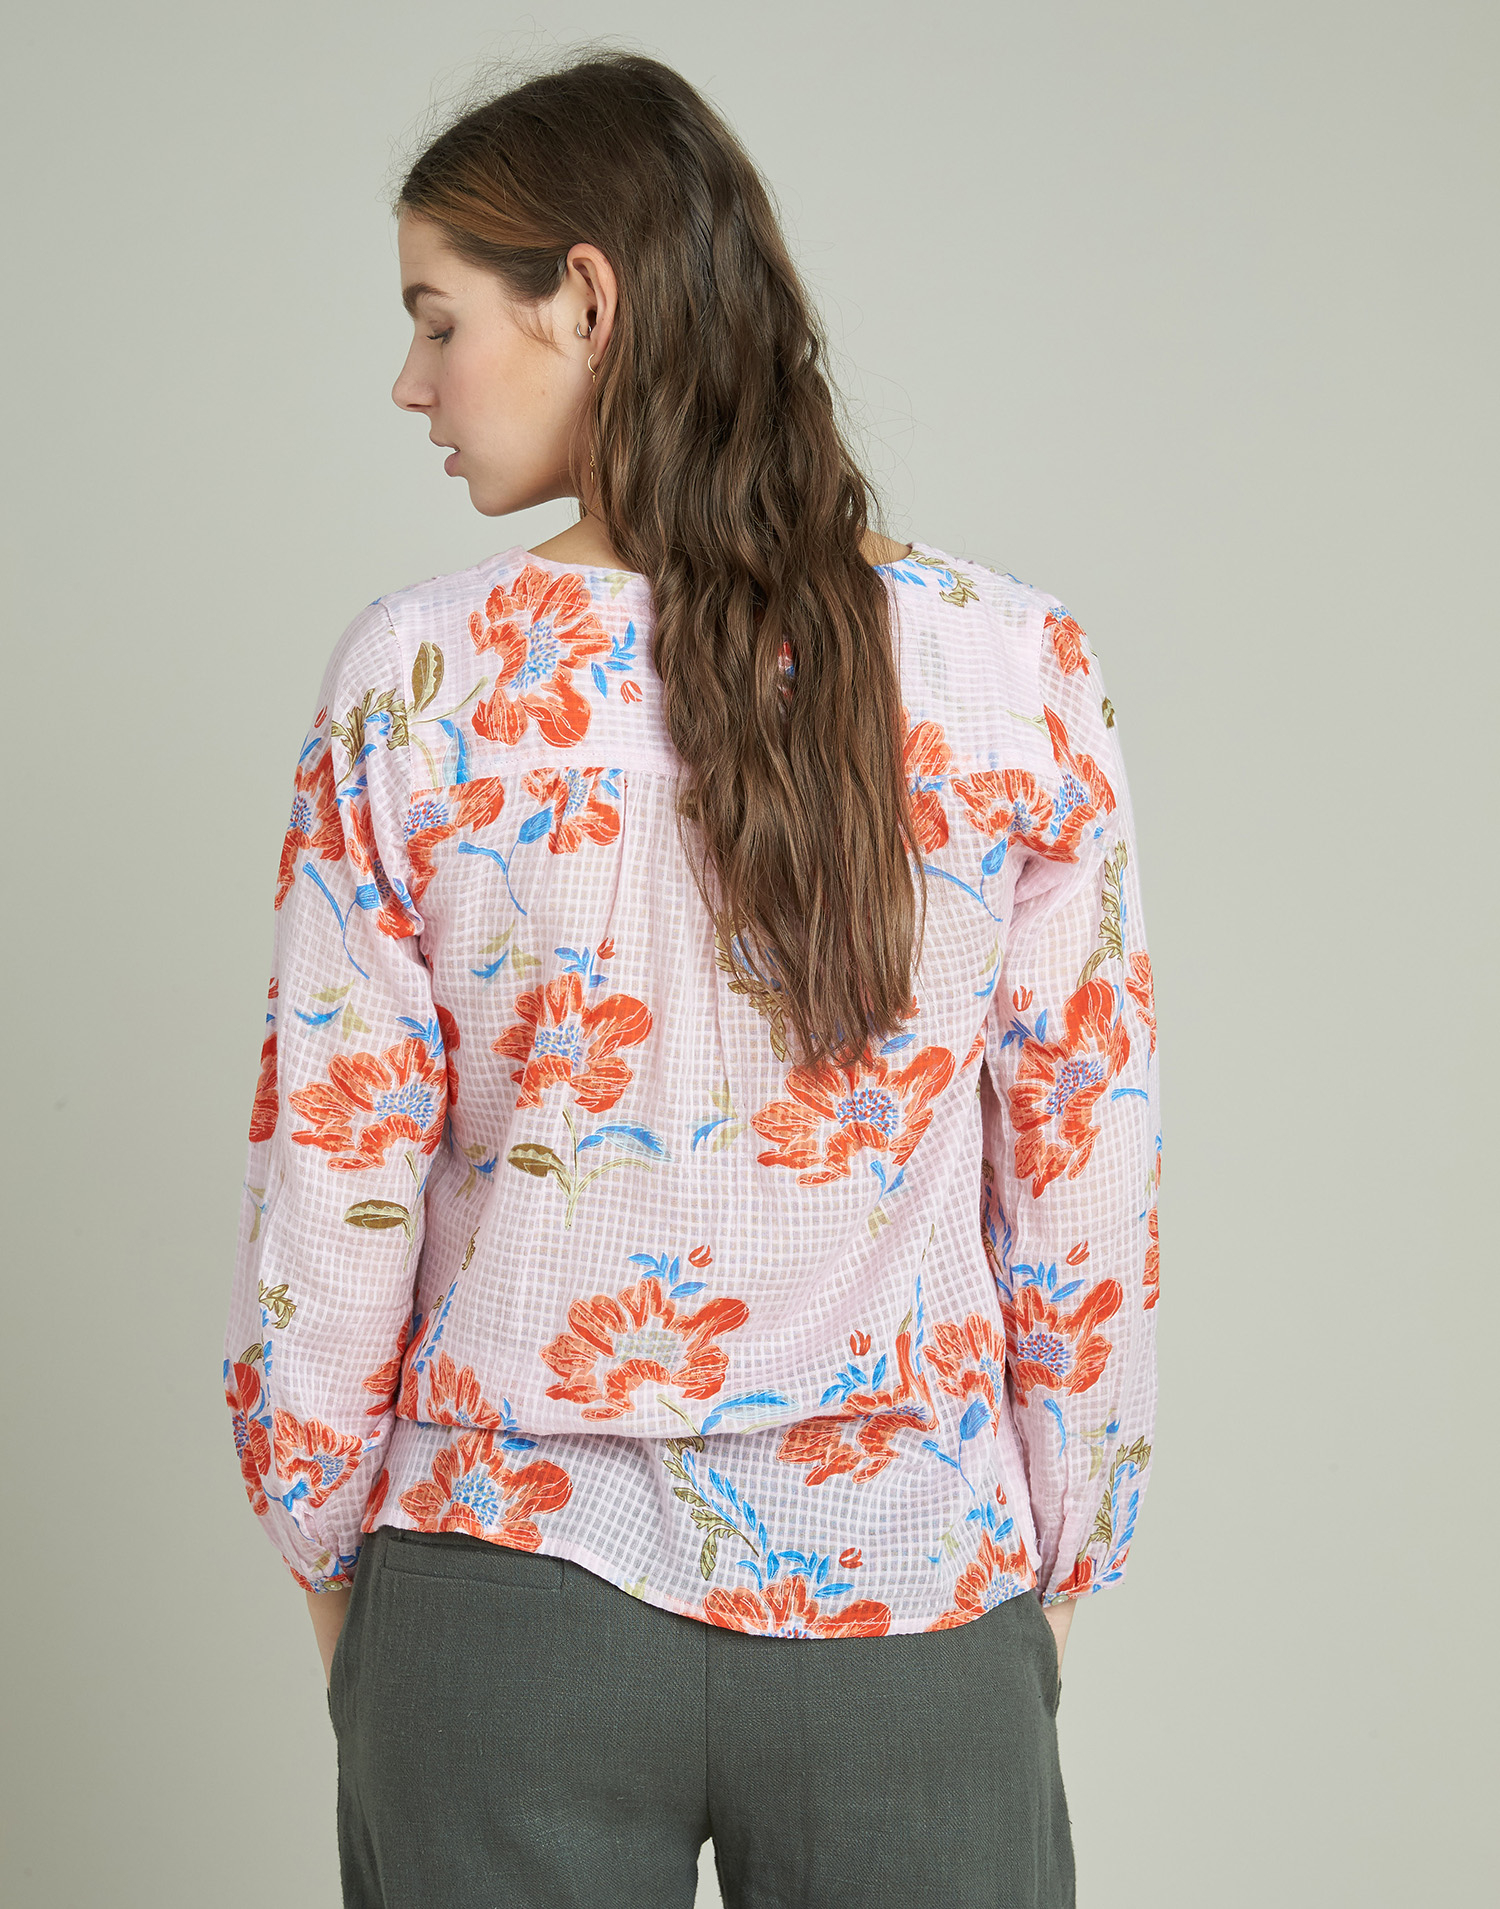 Flowered long-sleeved cotton shirt